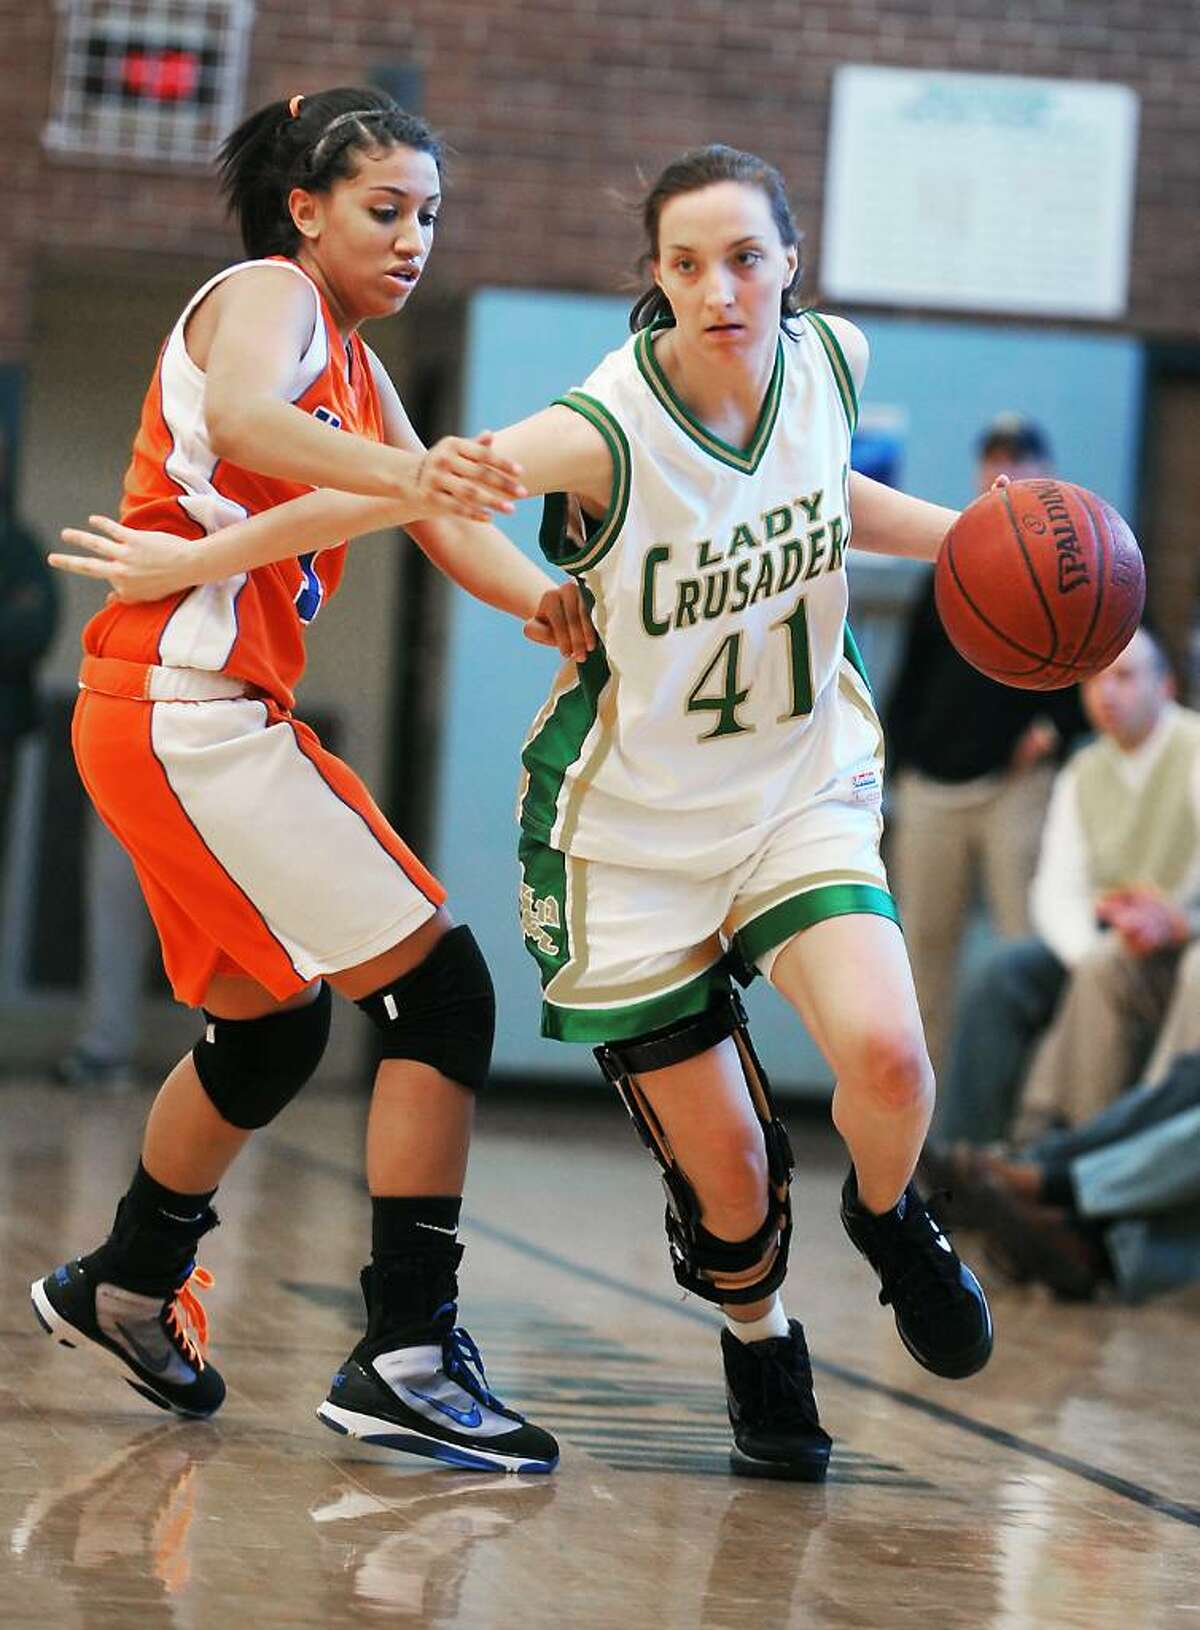 Trinity Catholic's Kelly Andersen takes the ball down the court against Danbury's Rabia Rawji in the quarterfinals of the FCIAC girls basketball championship in Stamford, Conn. on Saturday, Feb. 20, 2010.